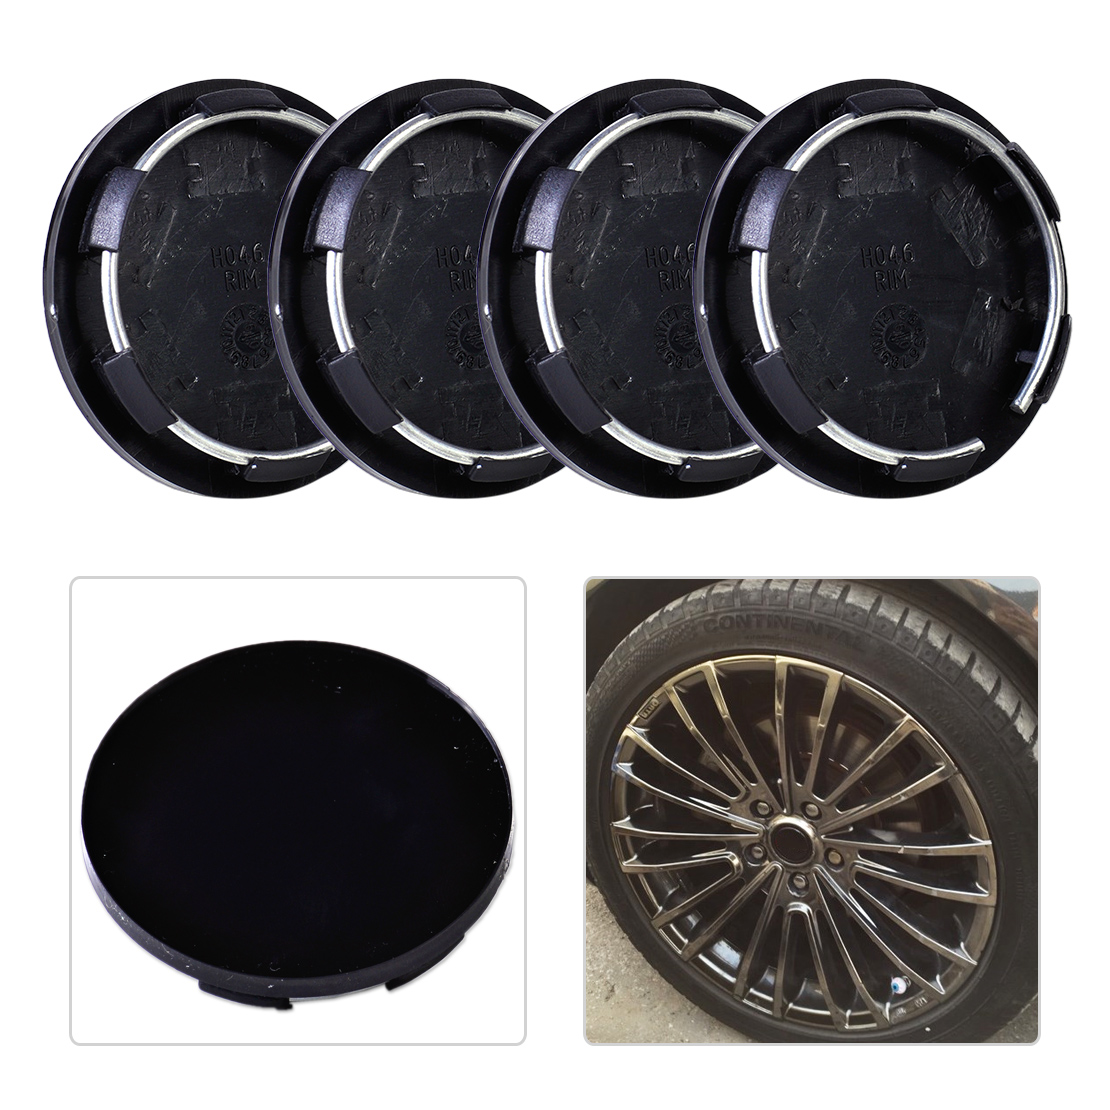 beler 4pcs 50mm Plastic <font><b>Wheel</b></font> Center Hubcap Set Tyre Trim Rim <font><b>Hub</b></font> Caps <font><b>Covers</b></font> <font><b>Car</b></font> Auto for VW Audi Ford Toyota Chevrolet Nissan image